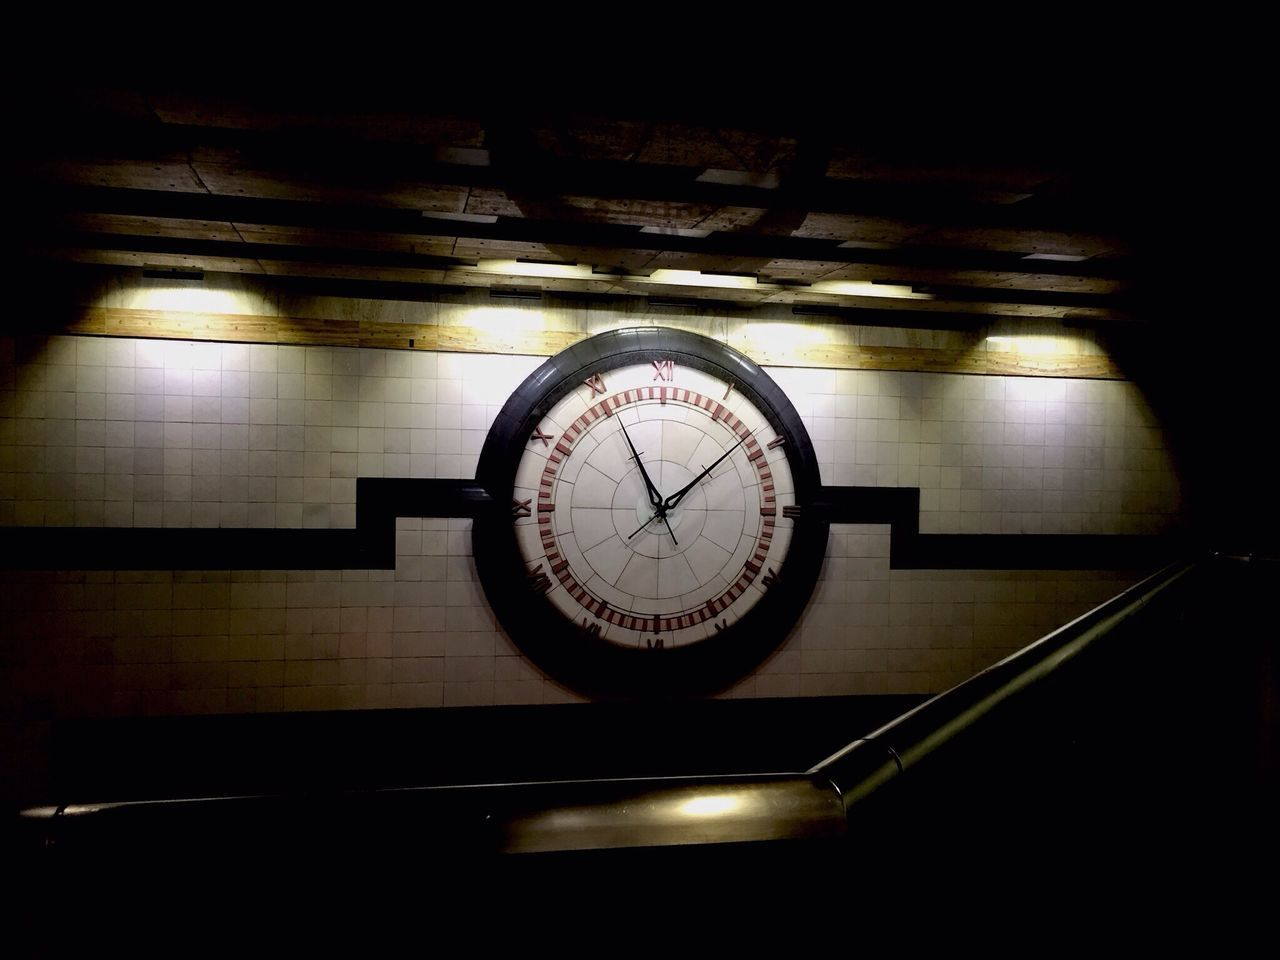 no people, old-fashioned, navigational compass, indoors, time, roman numeral, close-up, day, clock, minute hand, clock face